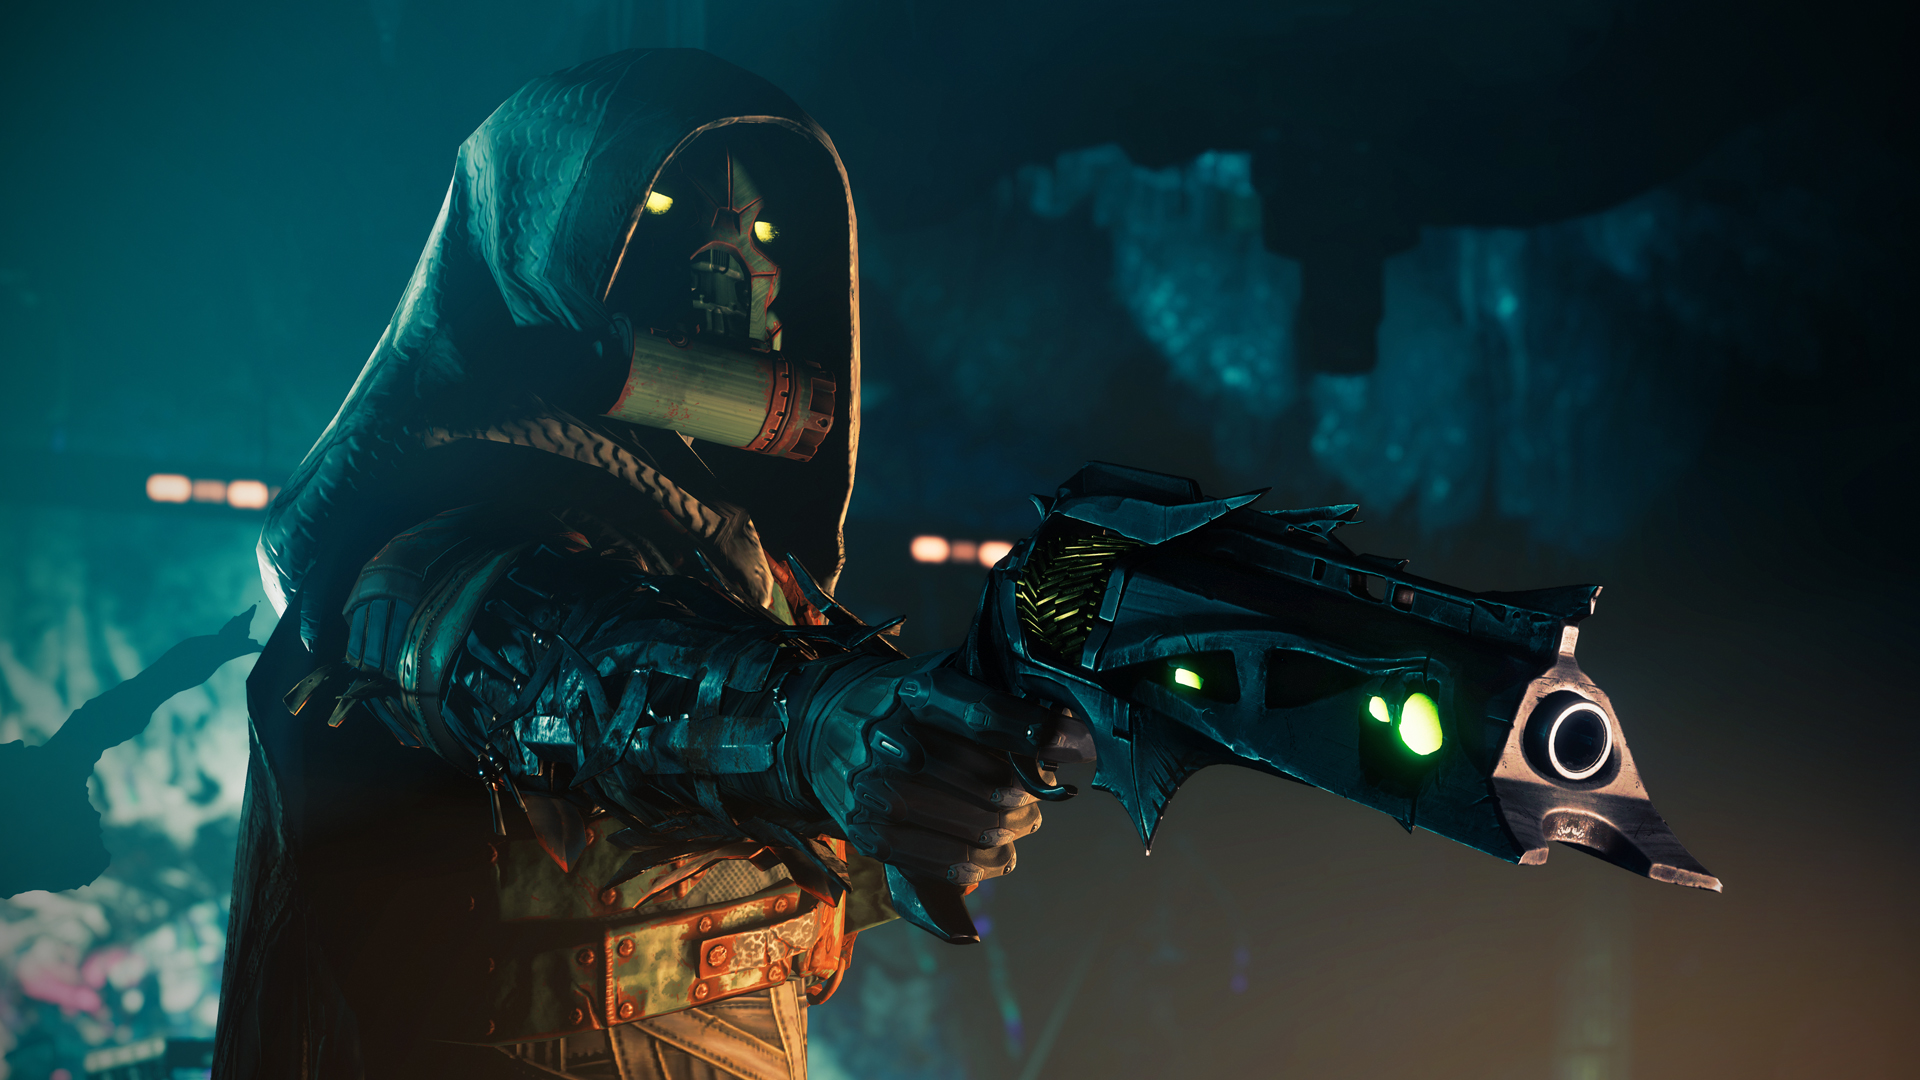 These Destiny 2 short stories are teasing a dark storyline rumored